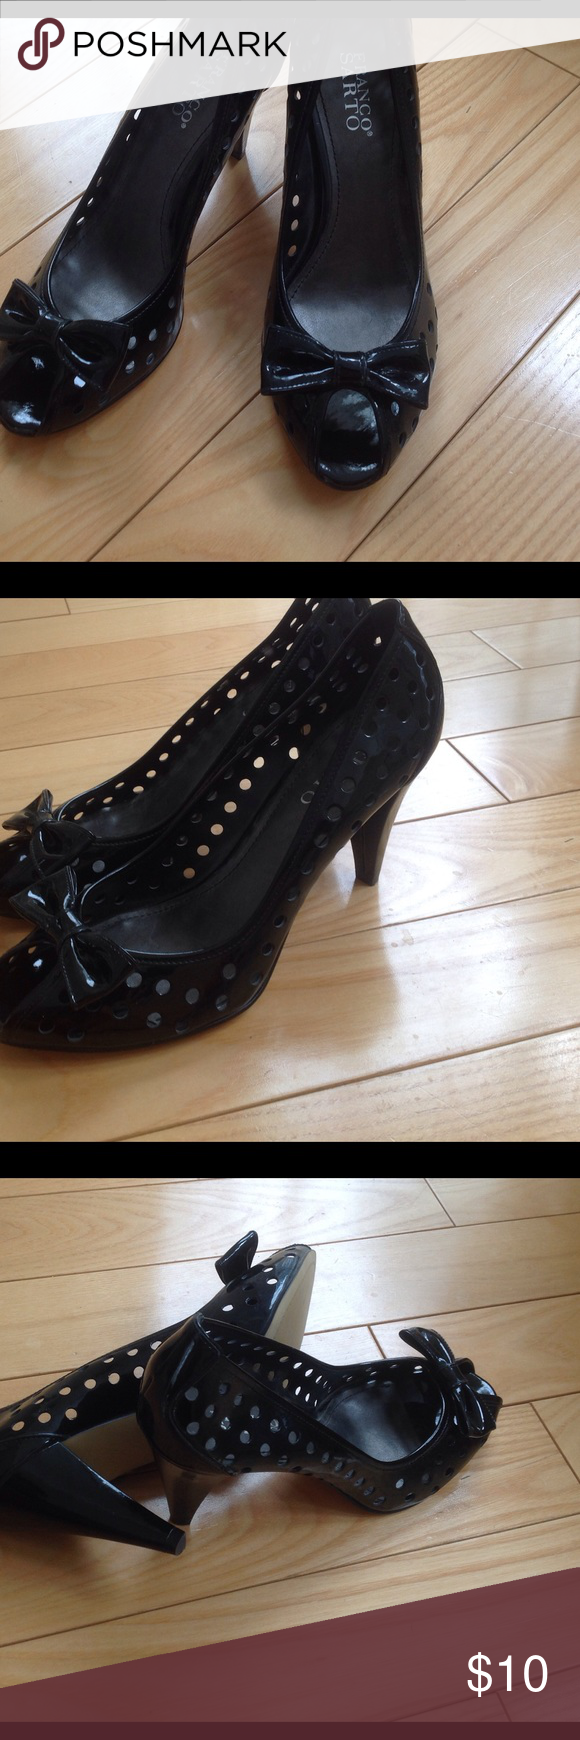 "Peep toe black pumps size 10.5 Black peep toe patent leather peep toe spring beauties with bow detail and circle cut outs-just perfect!  2.5"" heel, perfect condition, no scuffs at all. Franco Sarto Shoes Heels"